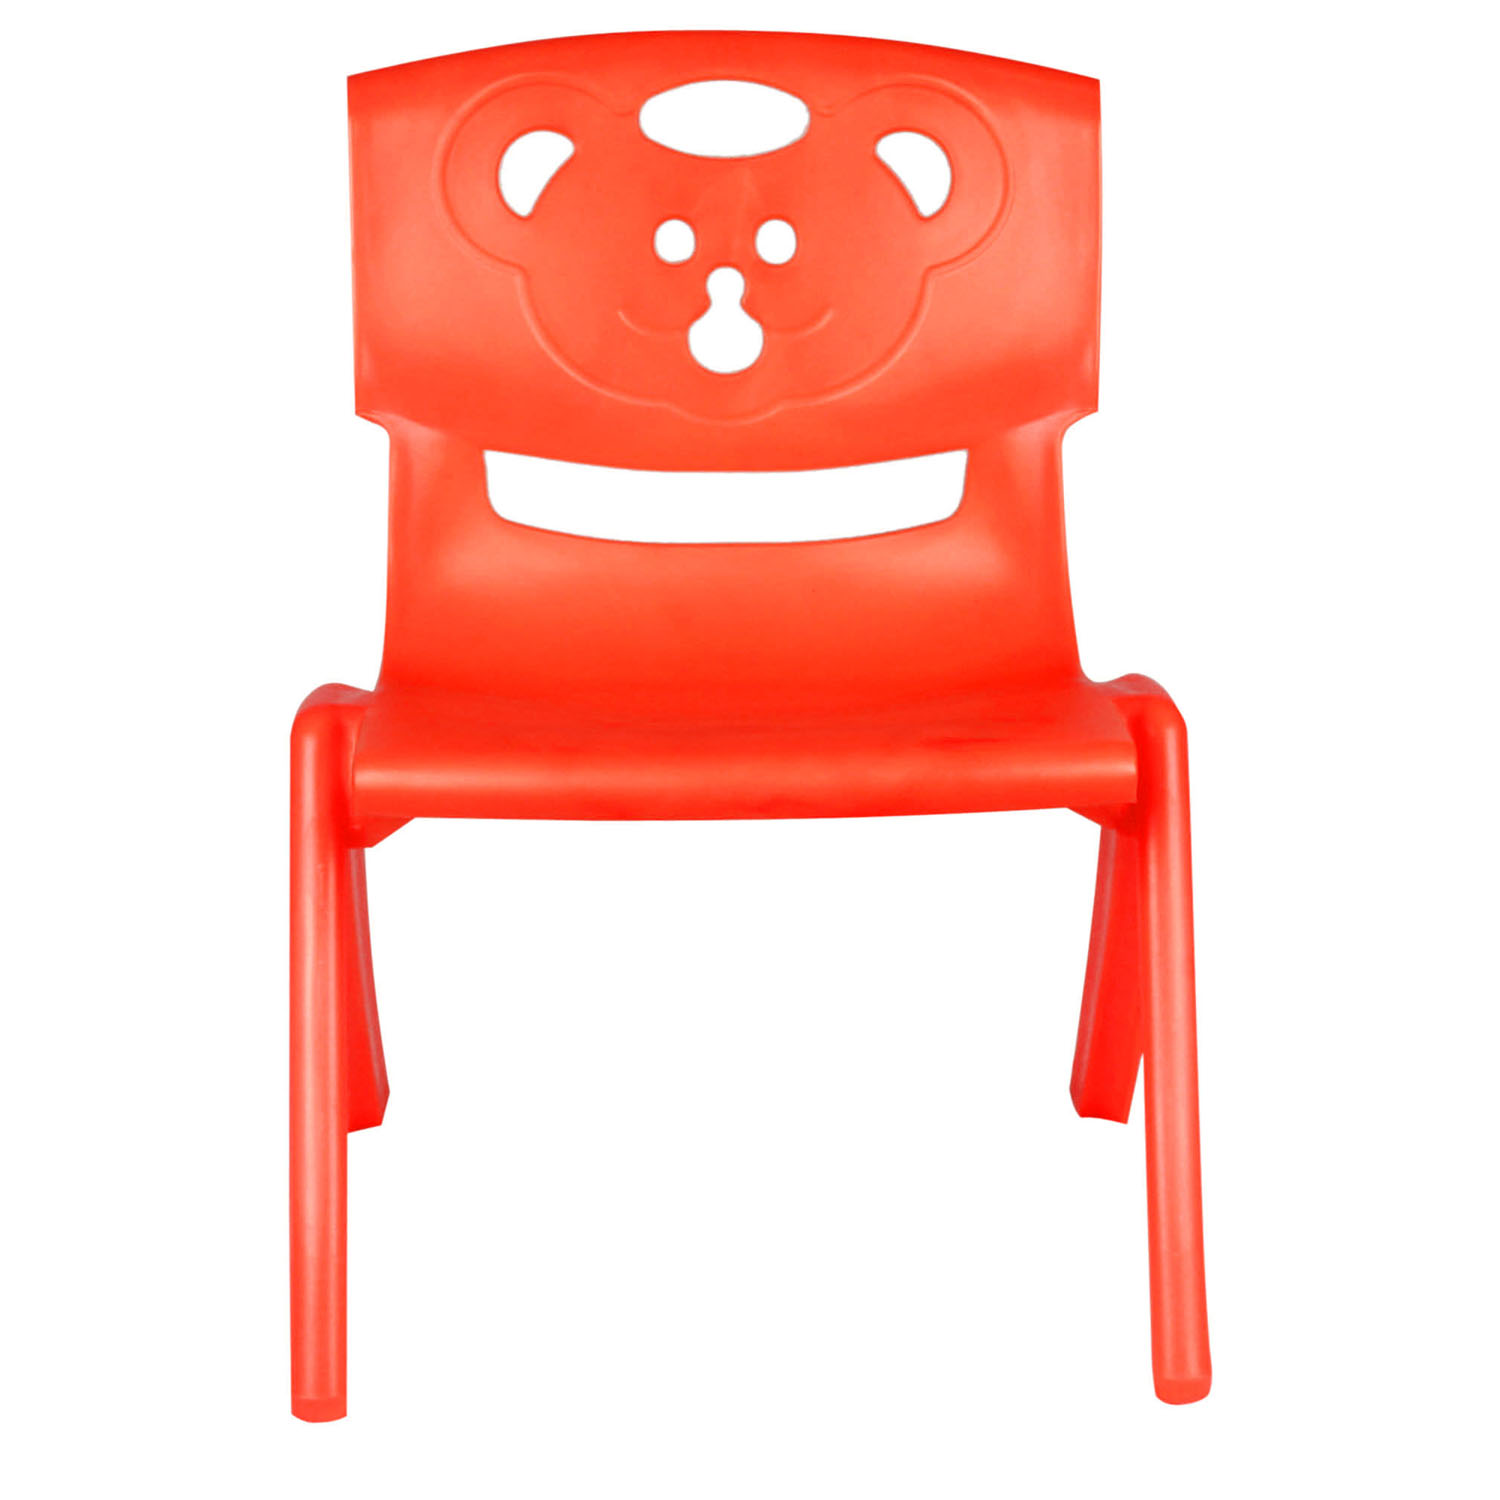 Baby chairs images galleries with a bite for Toddler chair